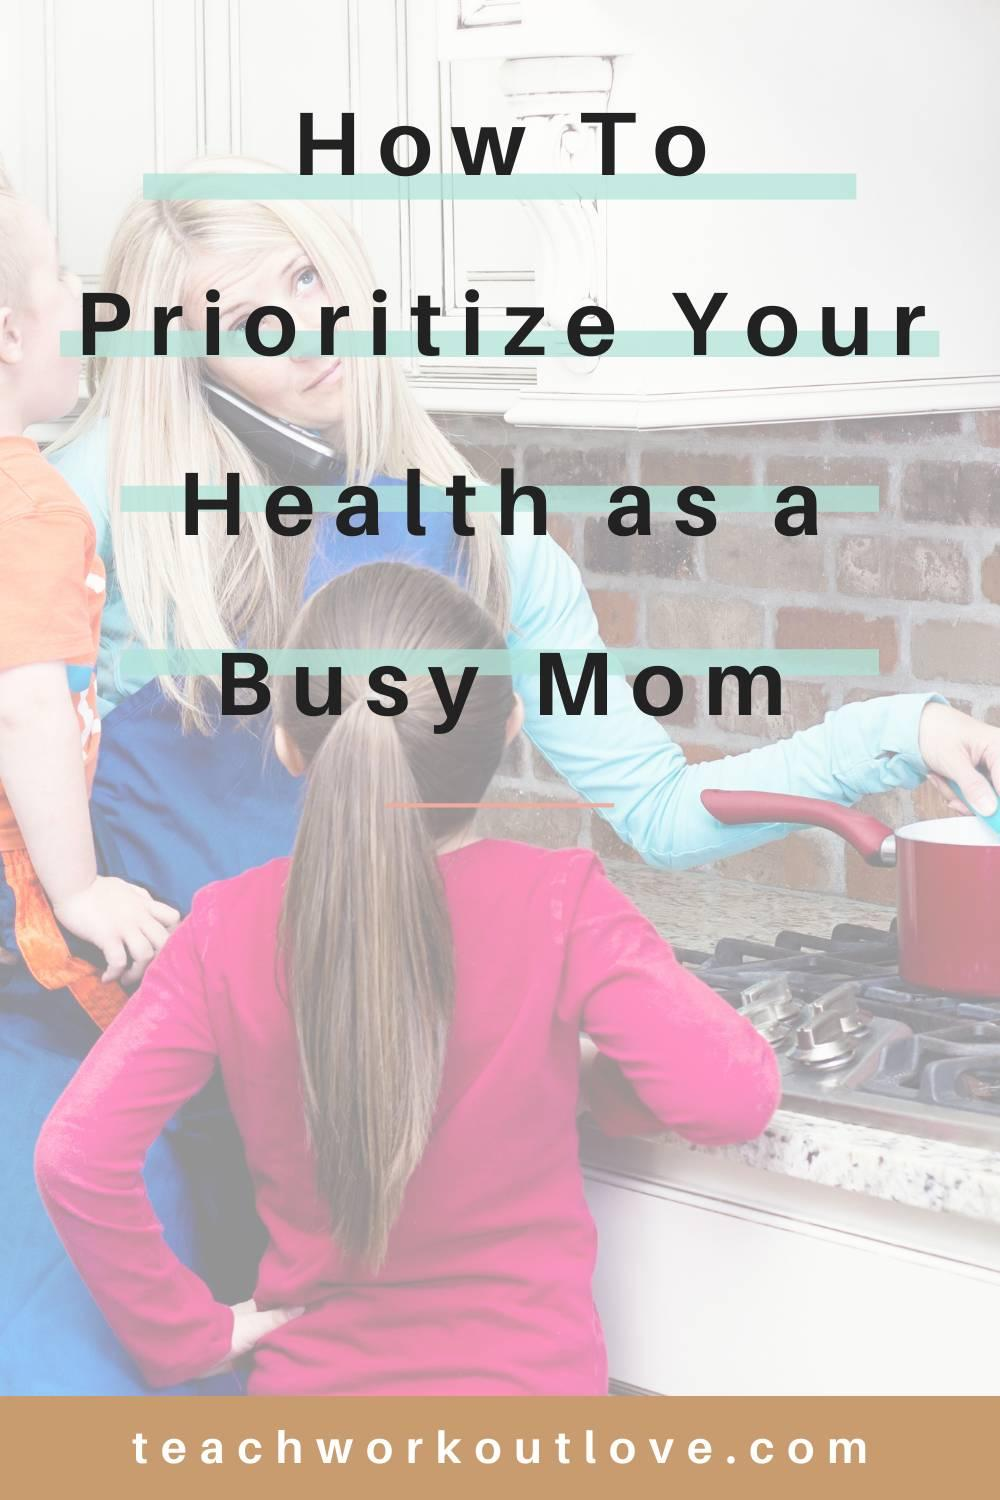 Being busy really puts your health go to the end of the line of things to get done. Here's some tips of how to prioritize your health.